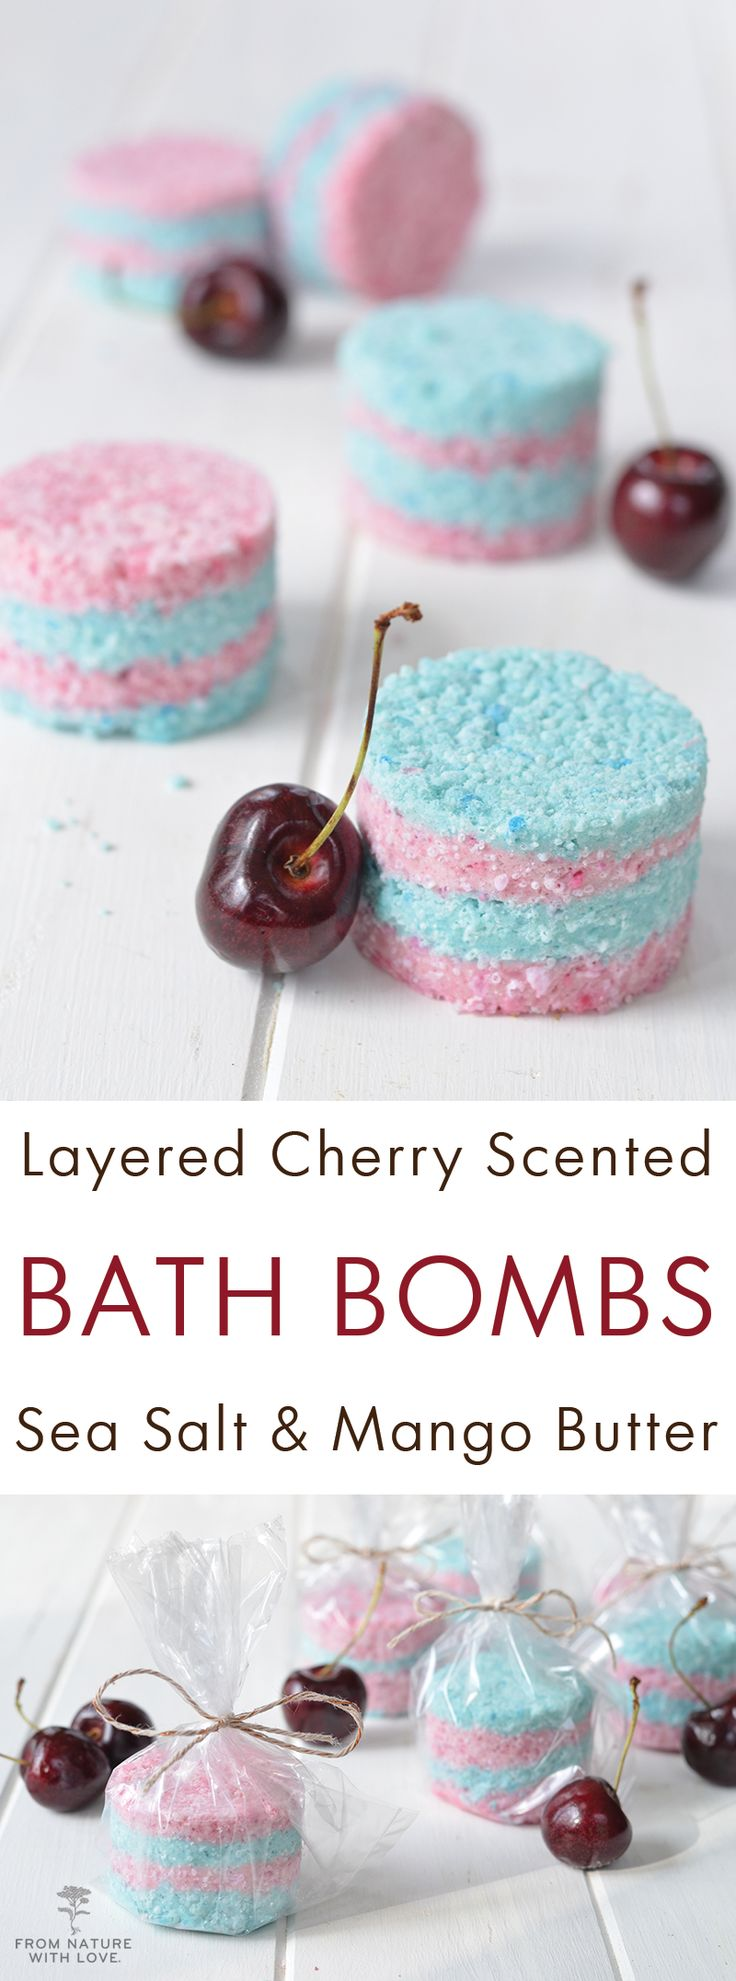 Layered Cherry Bath Bombs: These fun colored fizzing bath products are easy to make and oh so cute! Made with mango butter, kaolin clay, mineral micas, and a cherry scented Plant-Based Fragrance Oil.